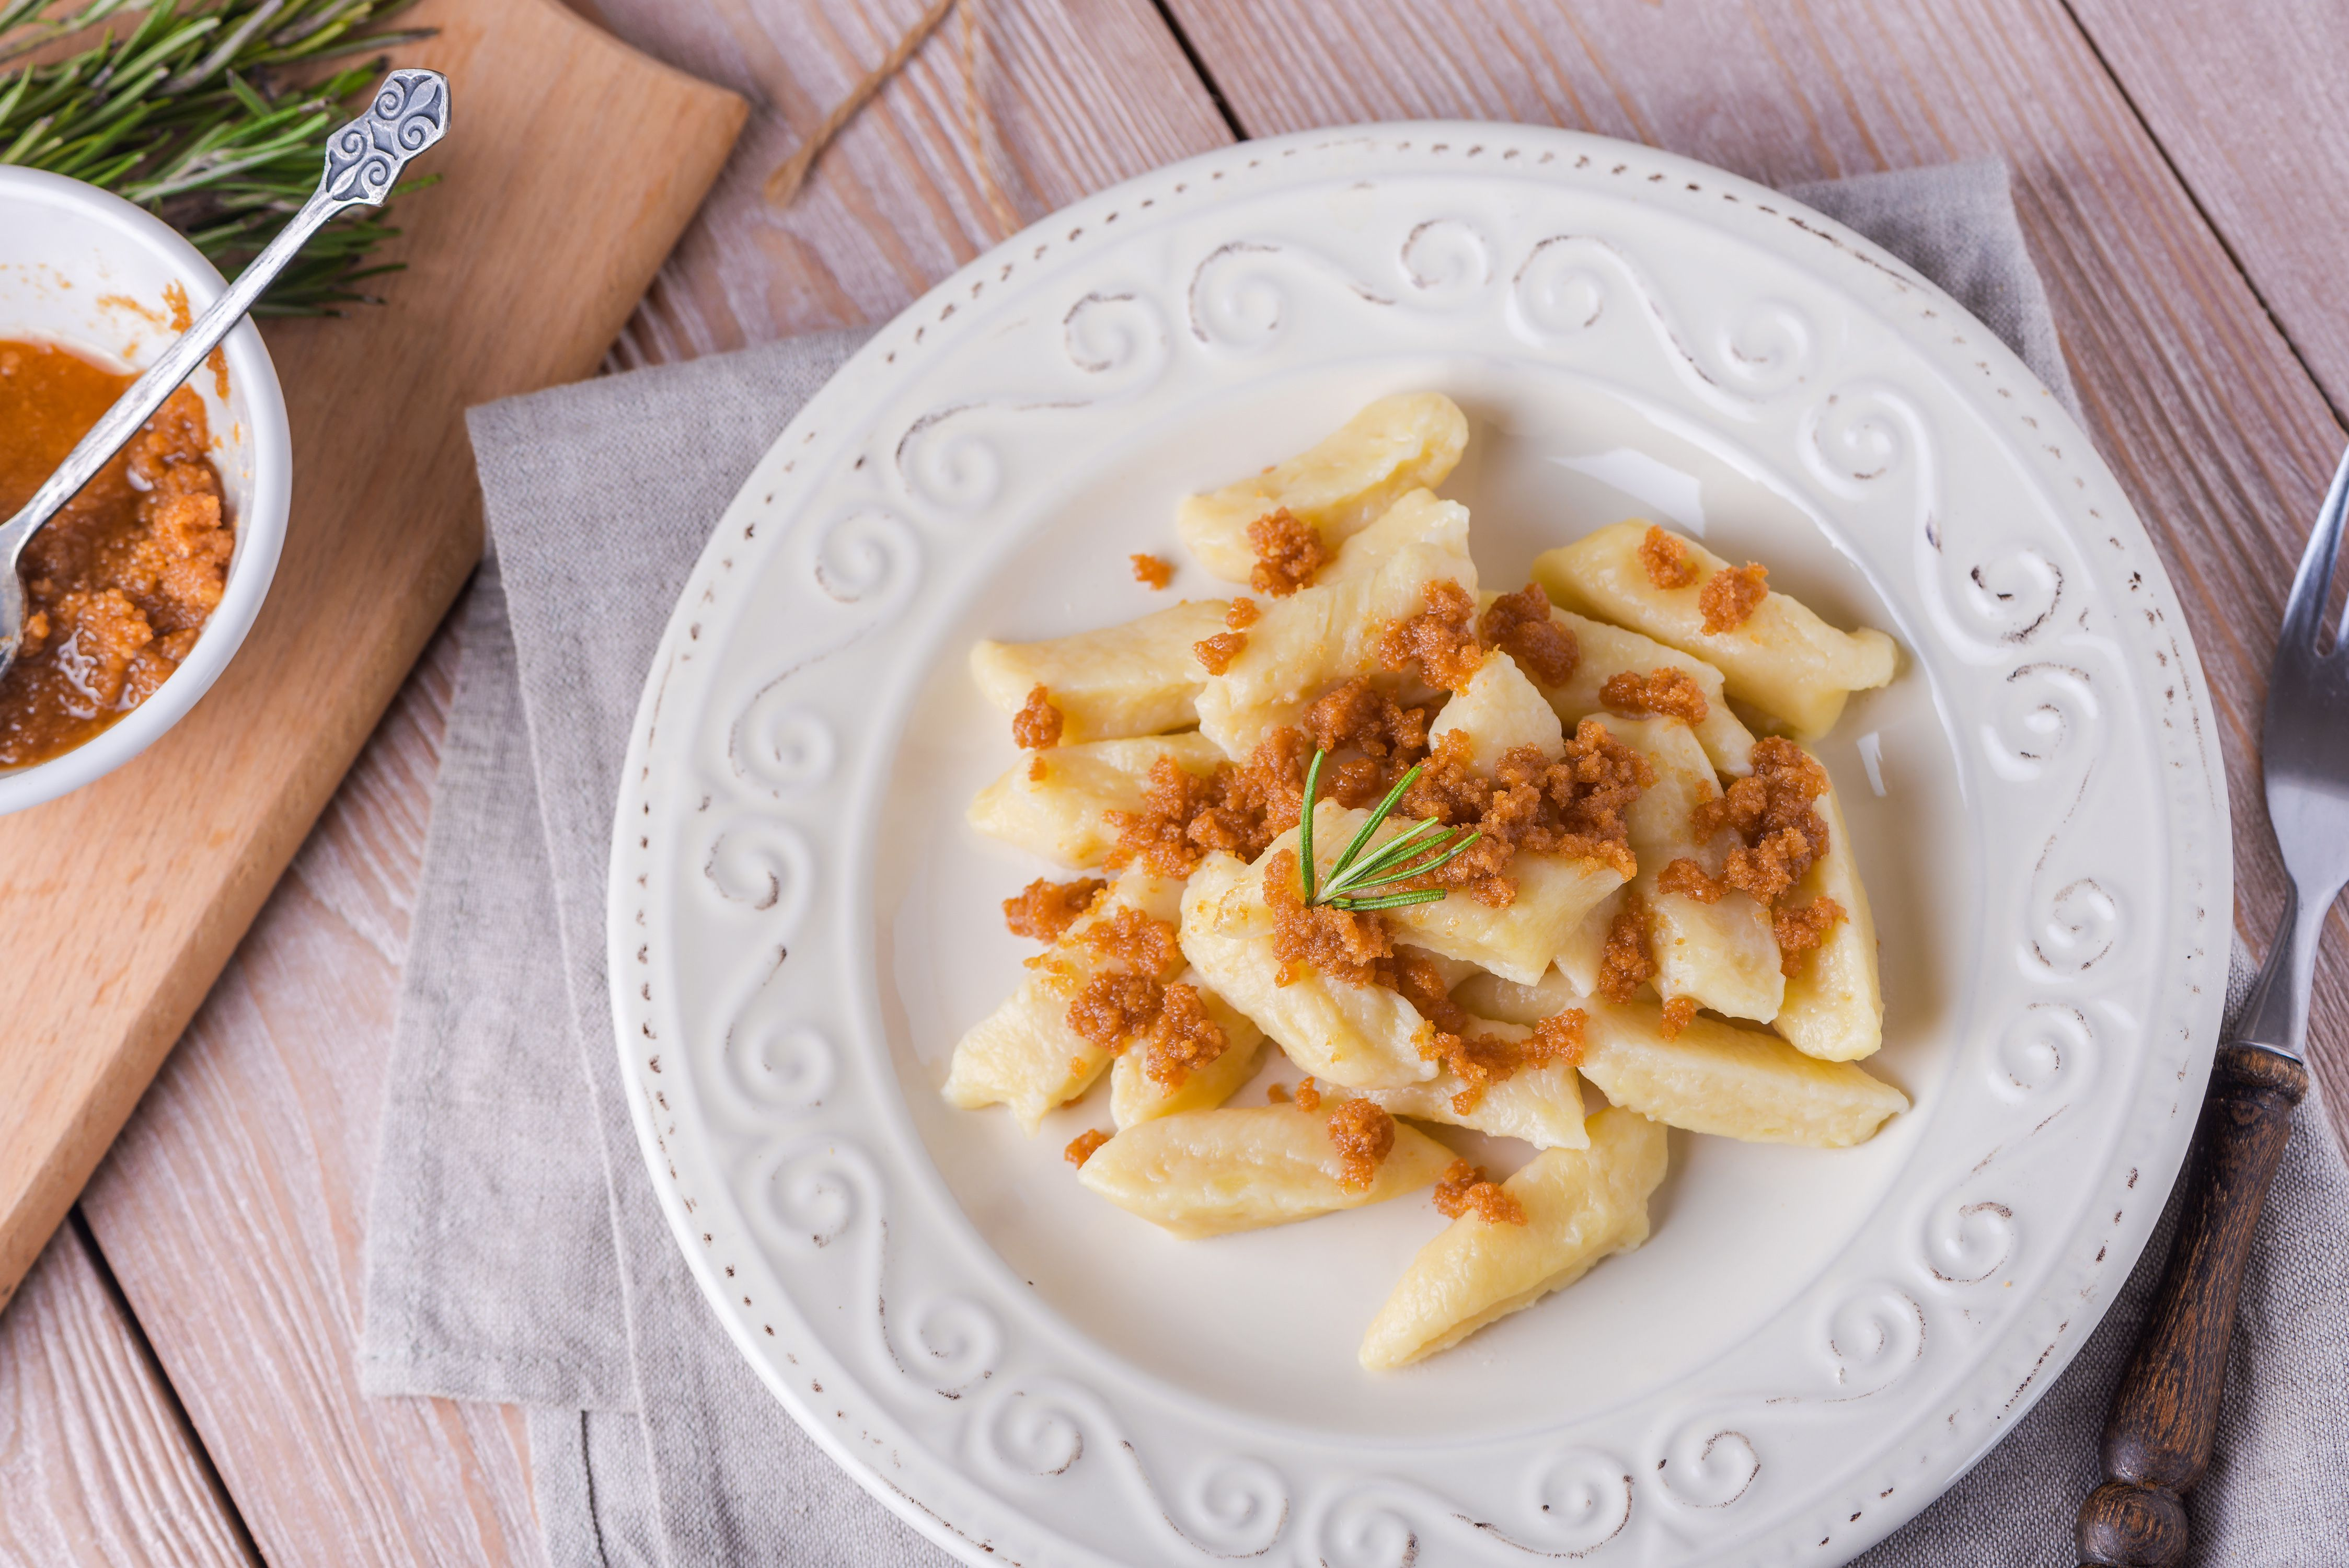 Polish mashed potatoes dumplings